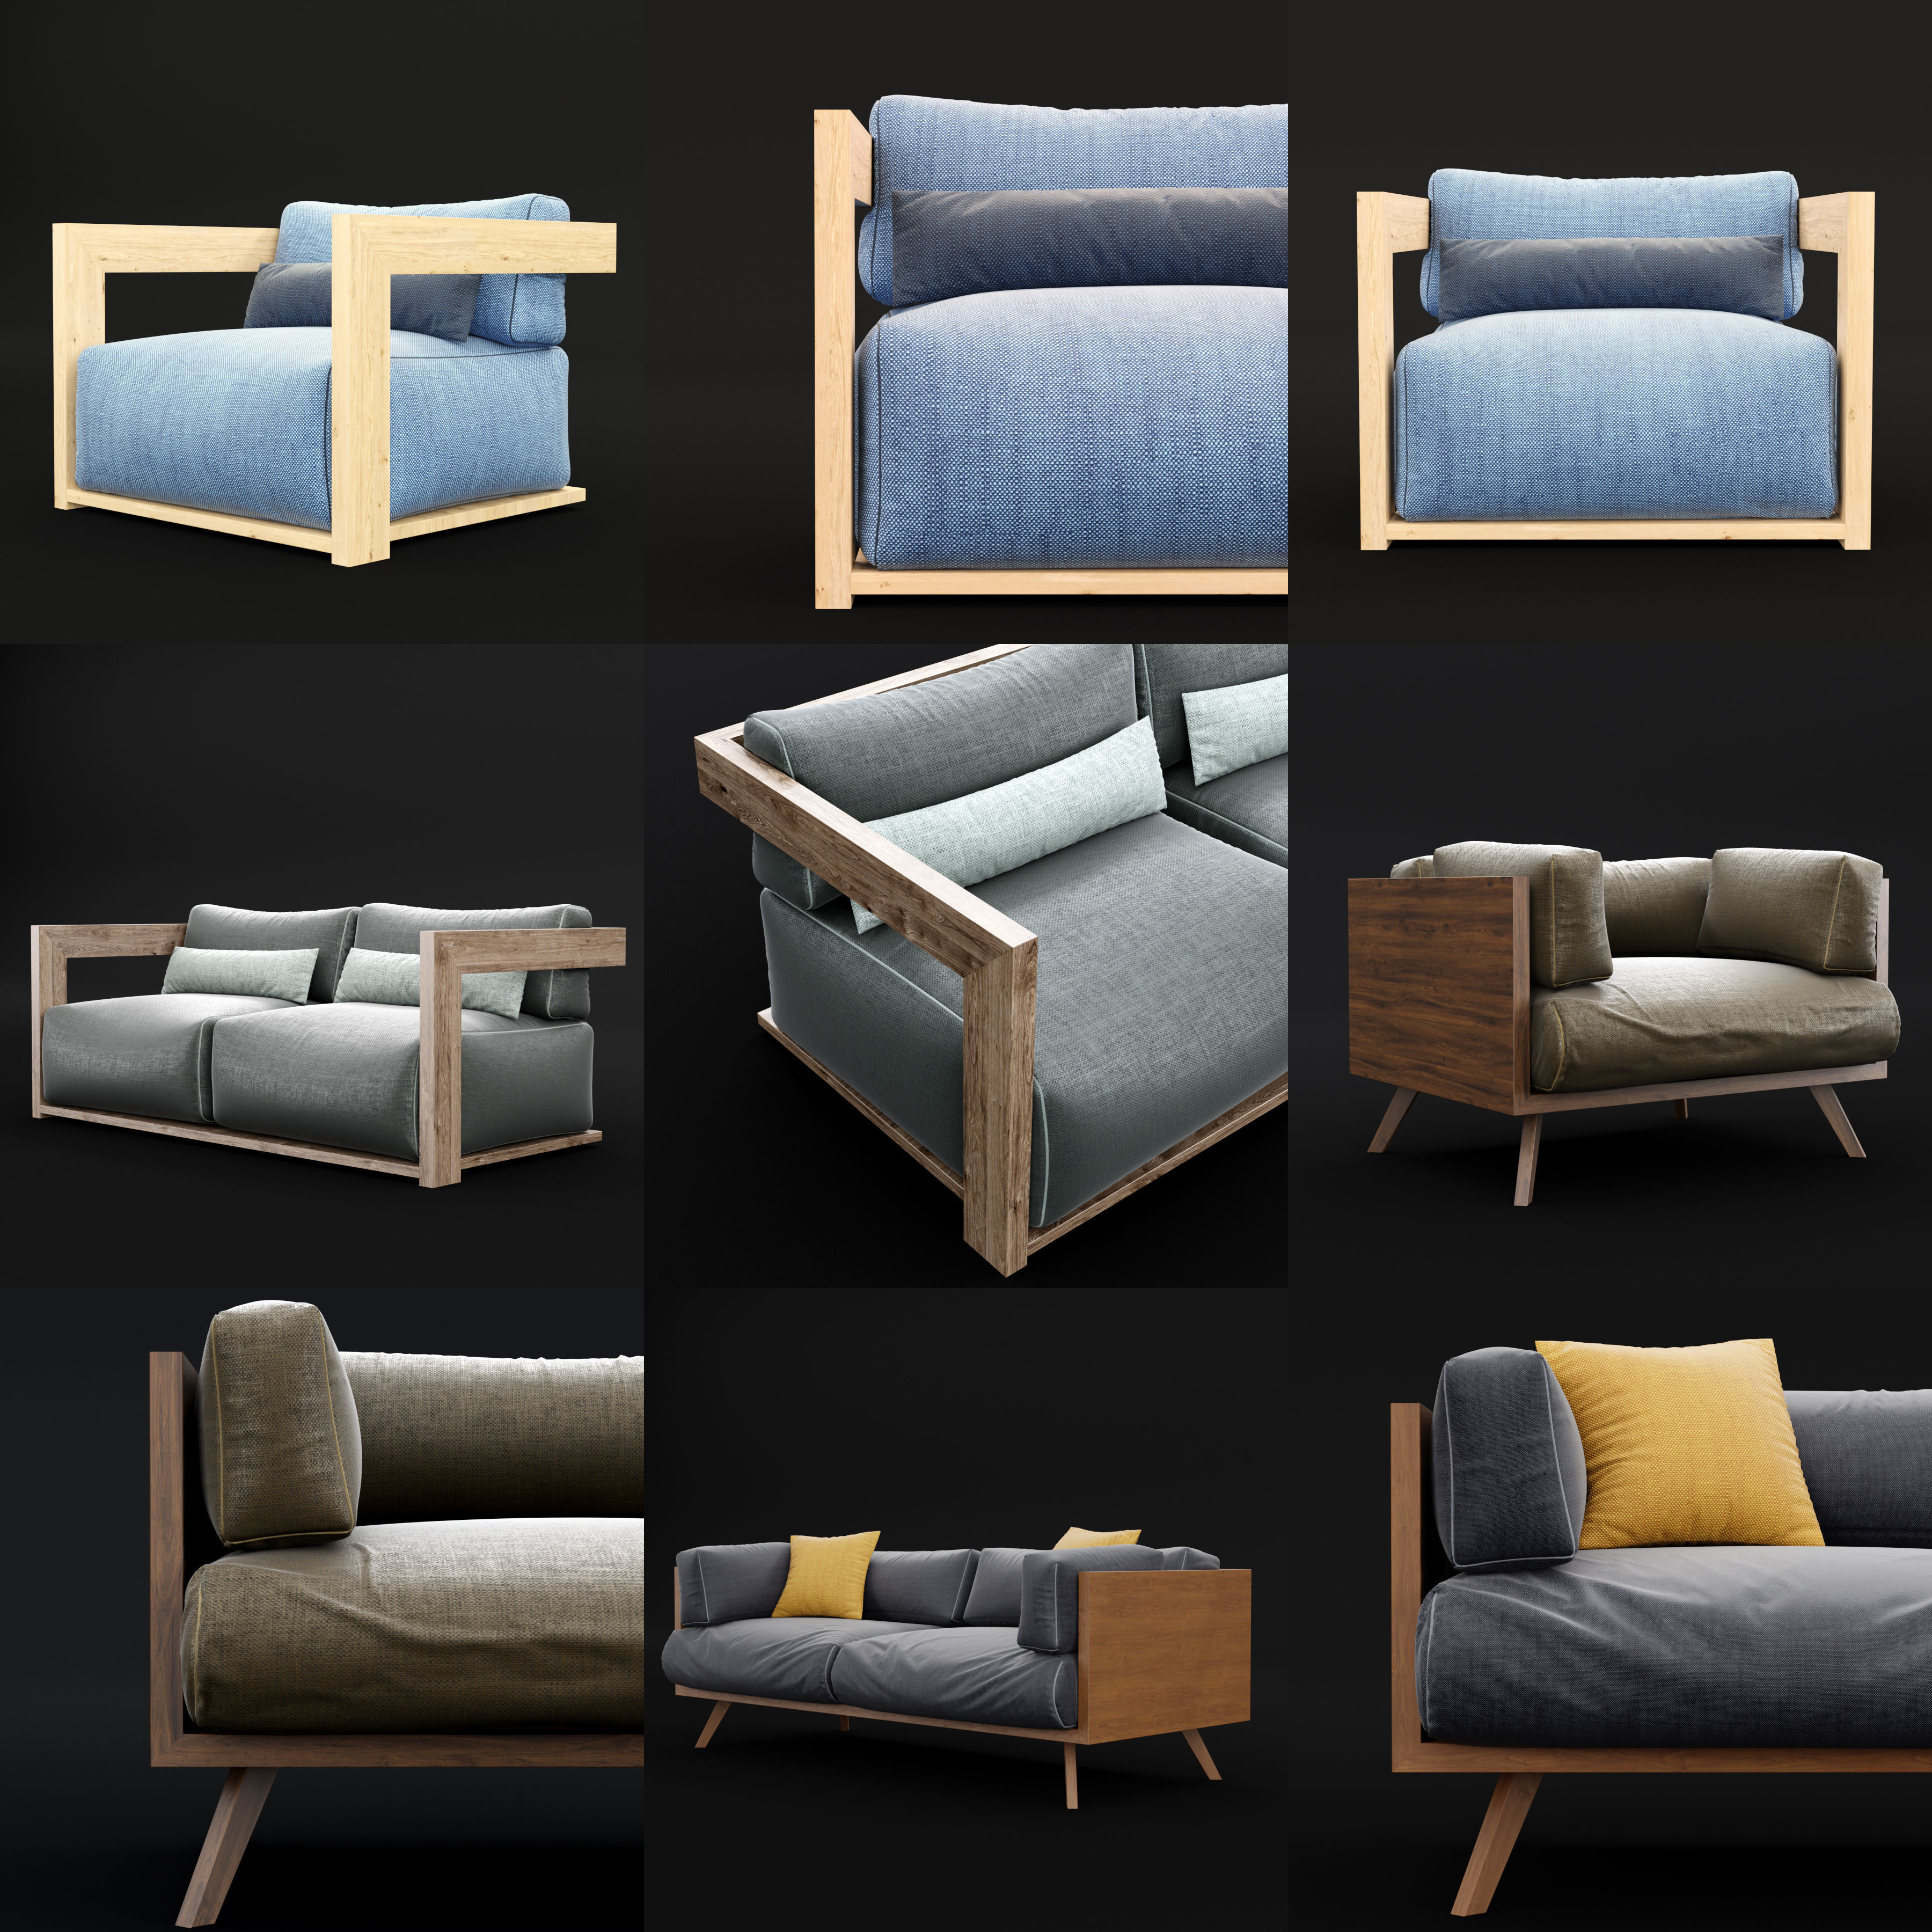 Reclaimed wood chair and sofa all 3D Model Collection MAX ...